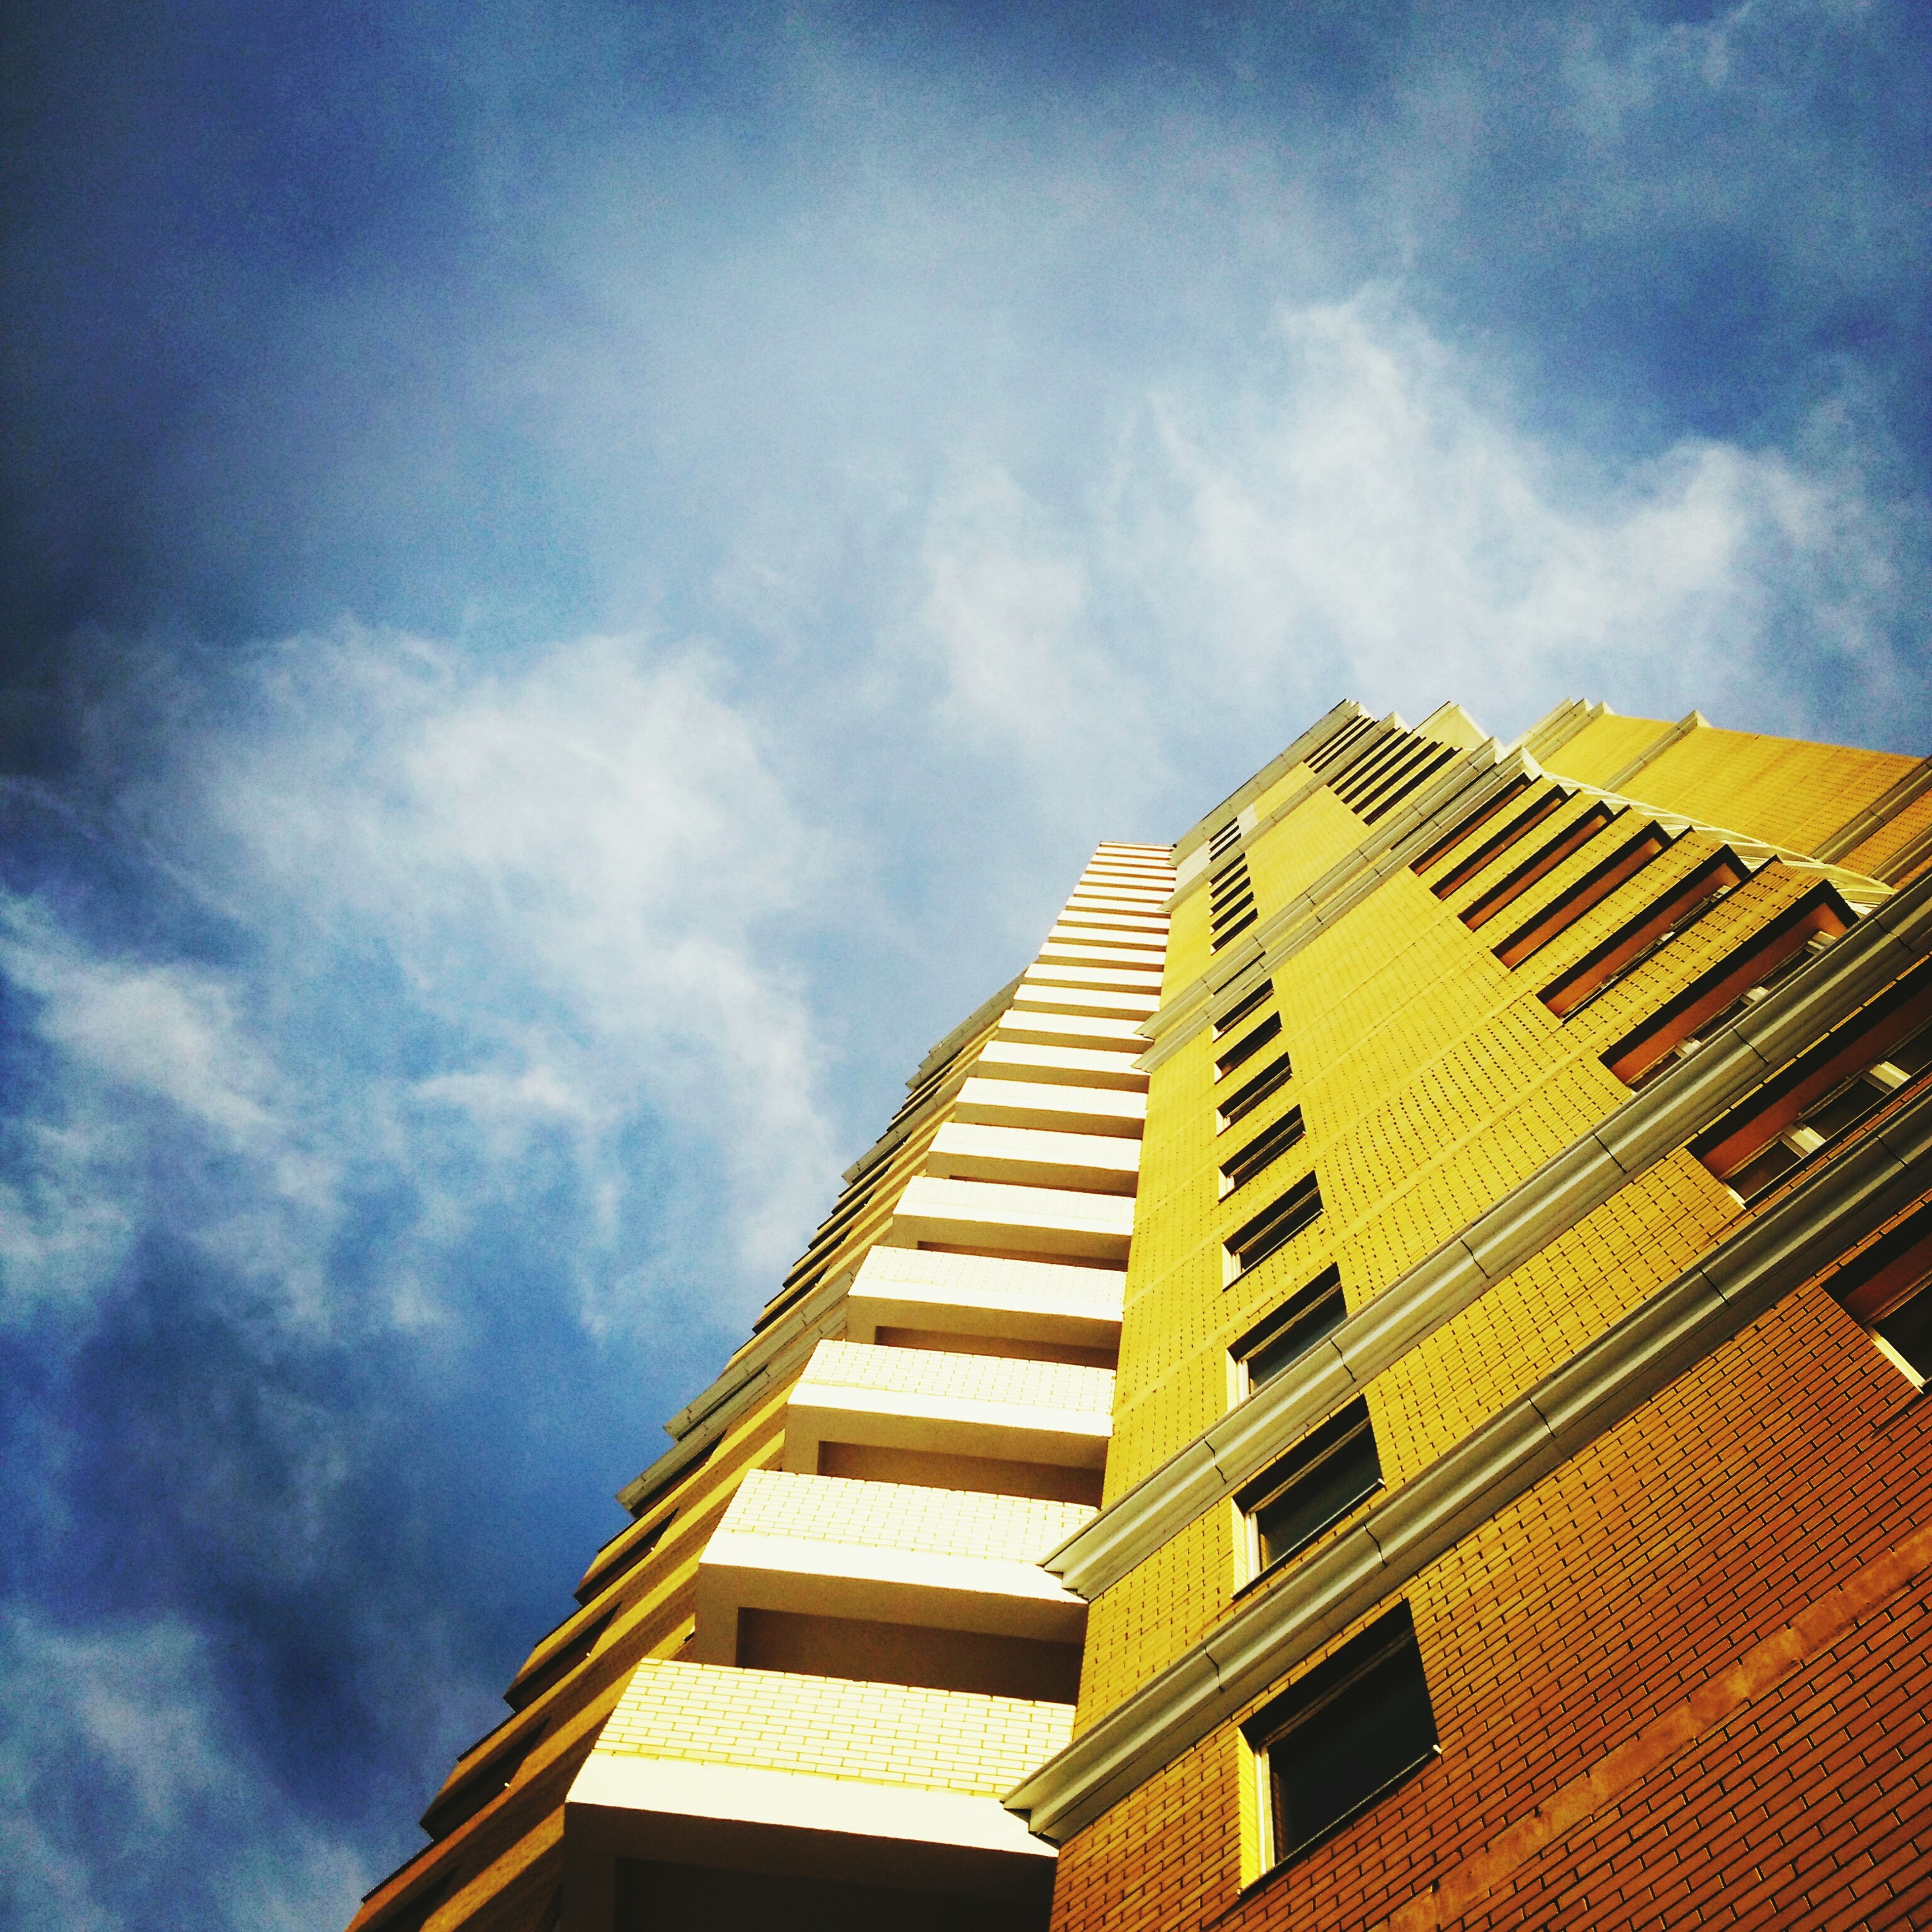 sky, low angle view, architecture, building exterior, built structure, cloud - sky, day, no people, outdoors, skyscraper